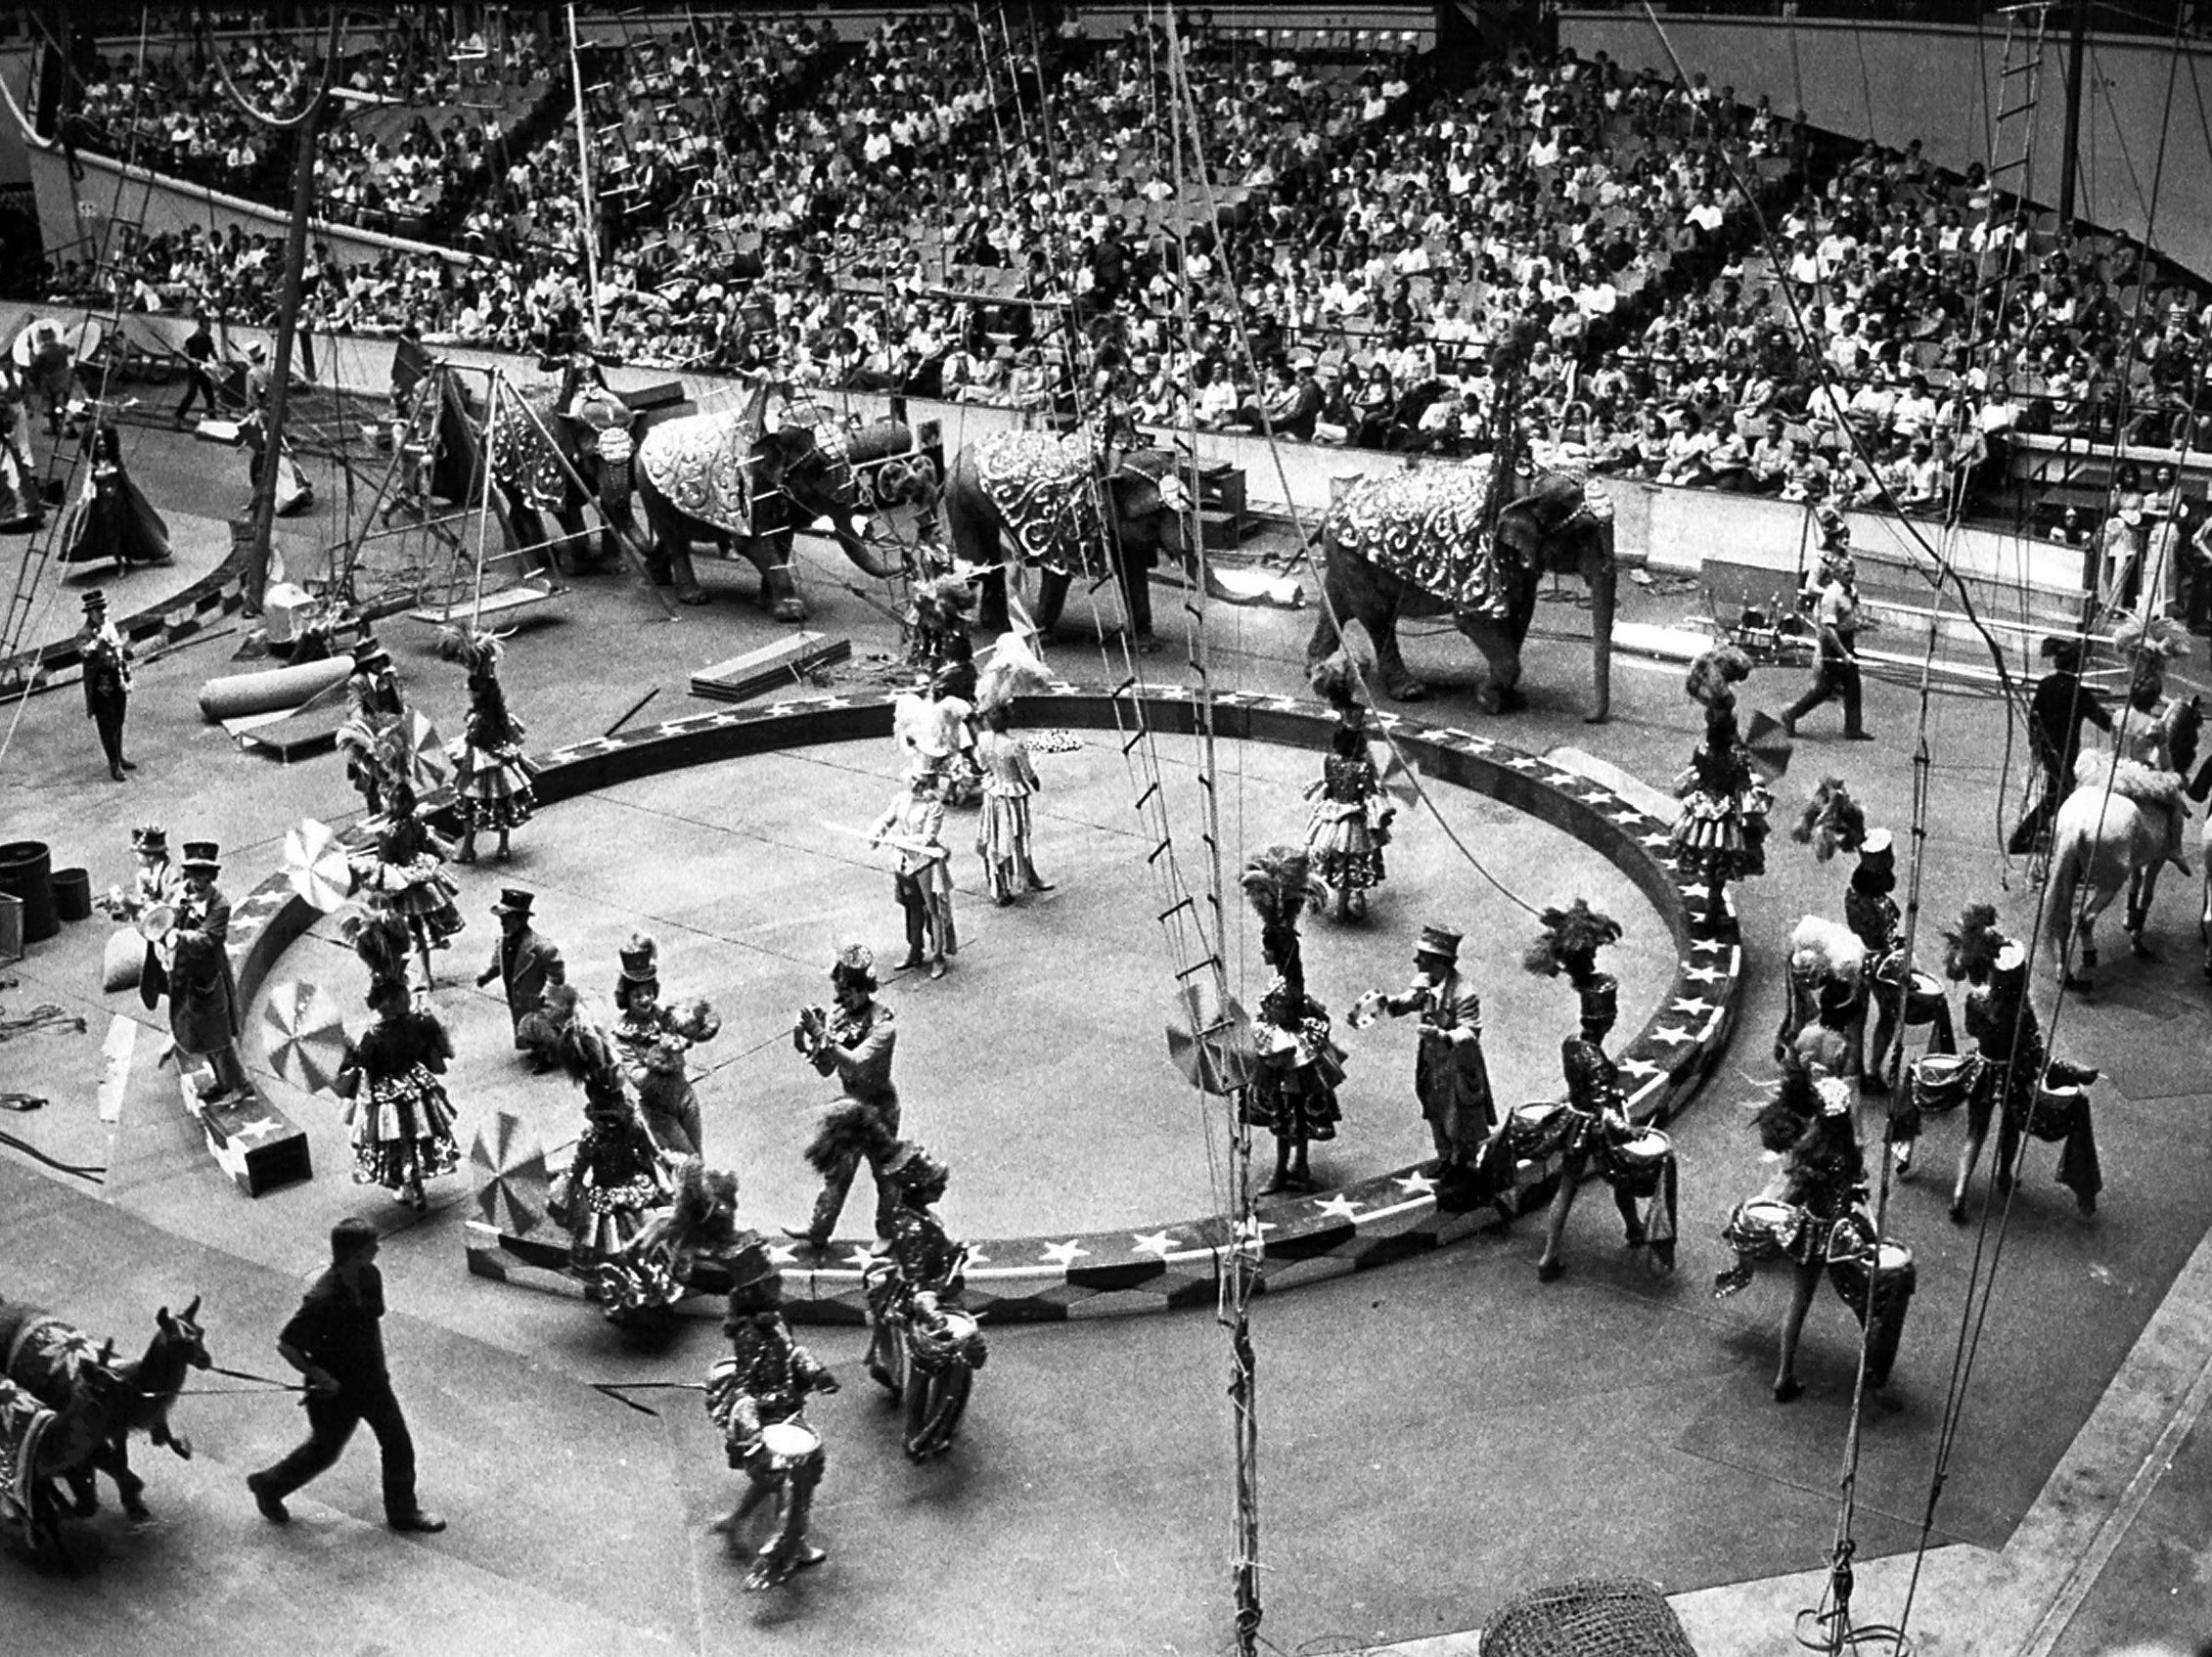 Clowns, elephants, horses and llamas are just part of the excitement as Ringling Brothers and Barnum & Bailey Circus opens at the Mid-South Coliseum on 26 Jul 1974.